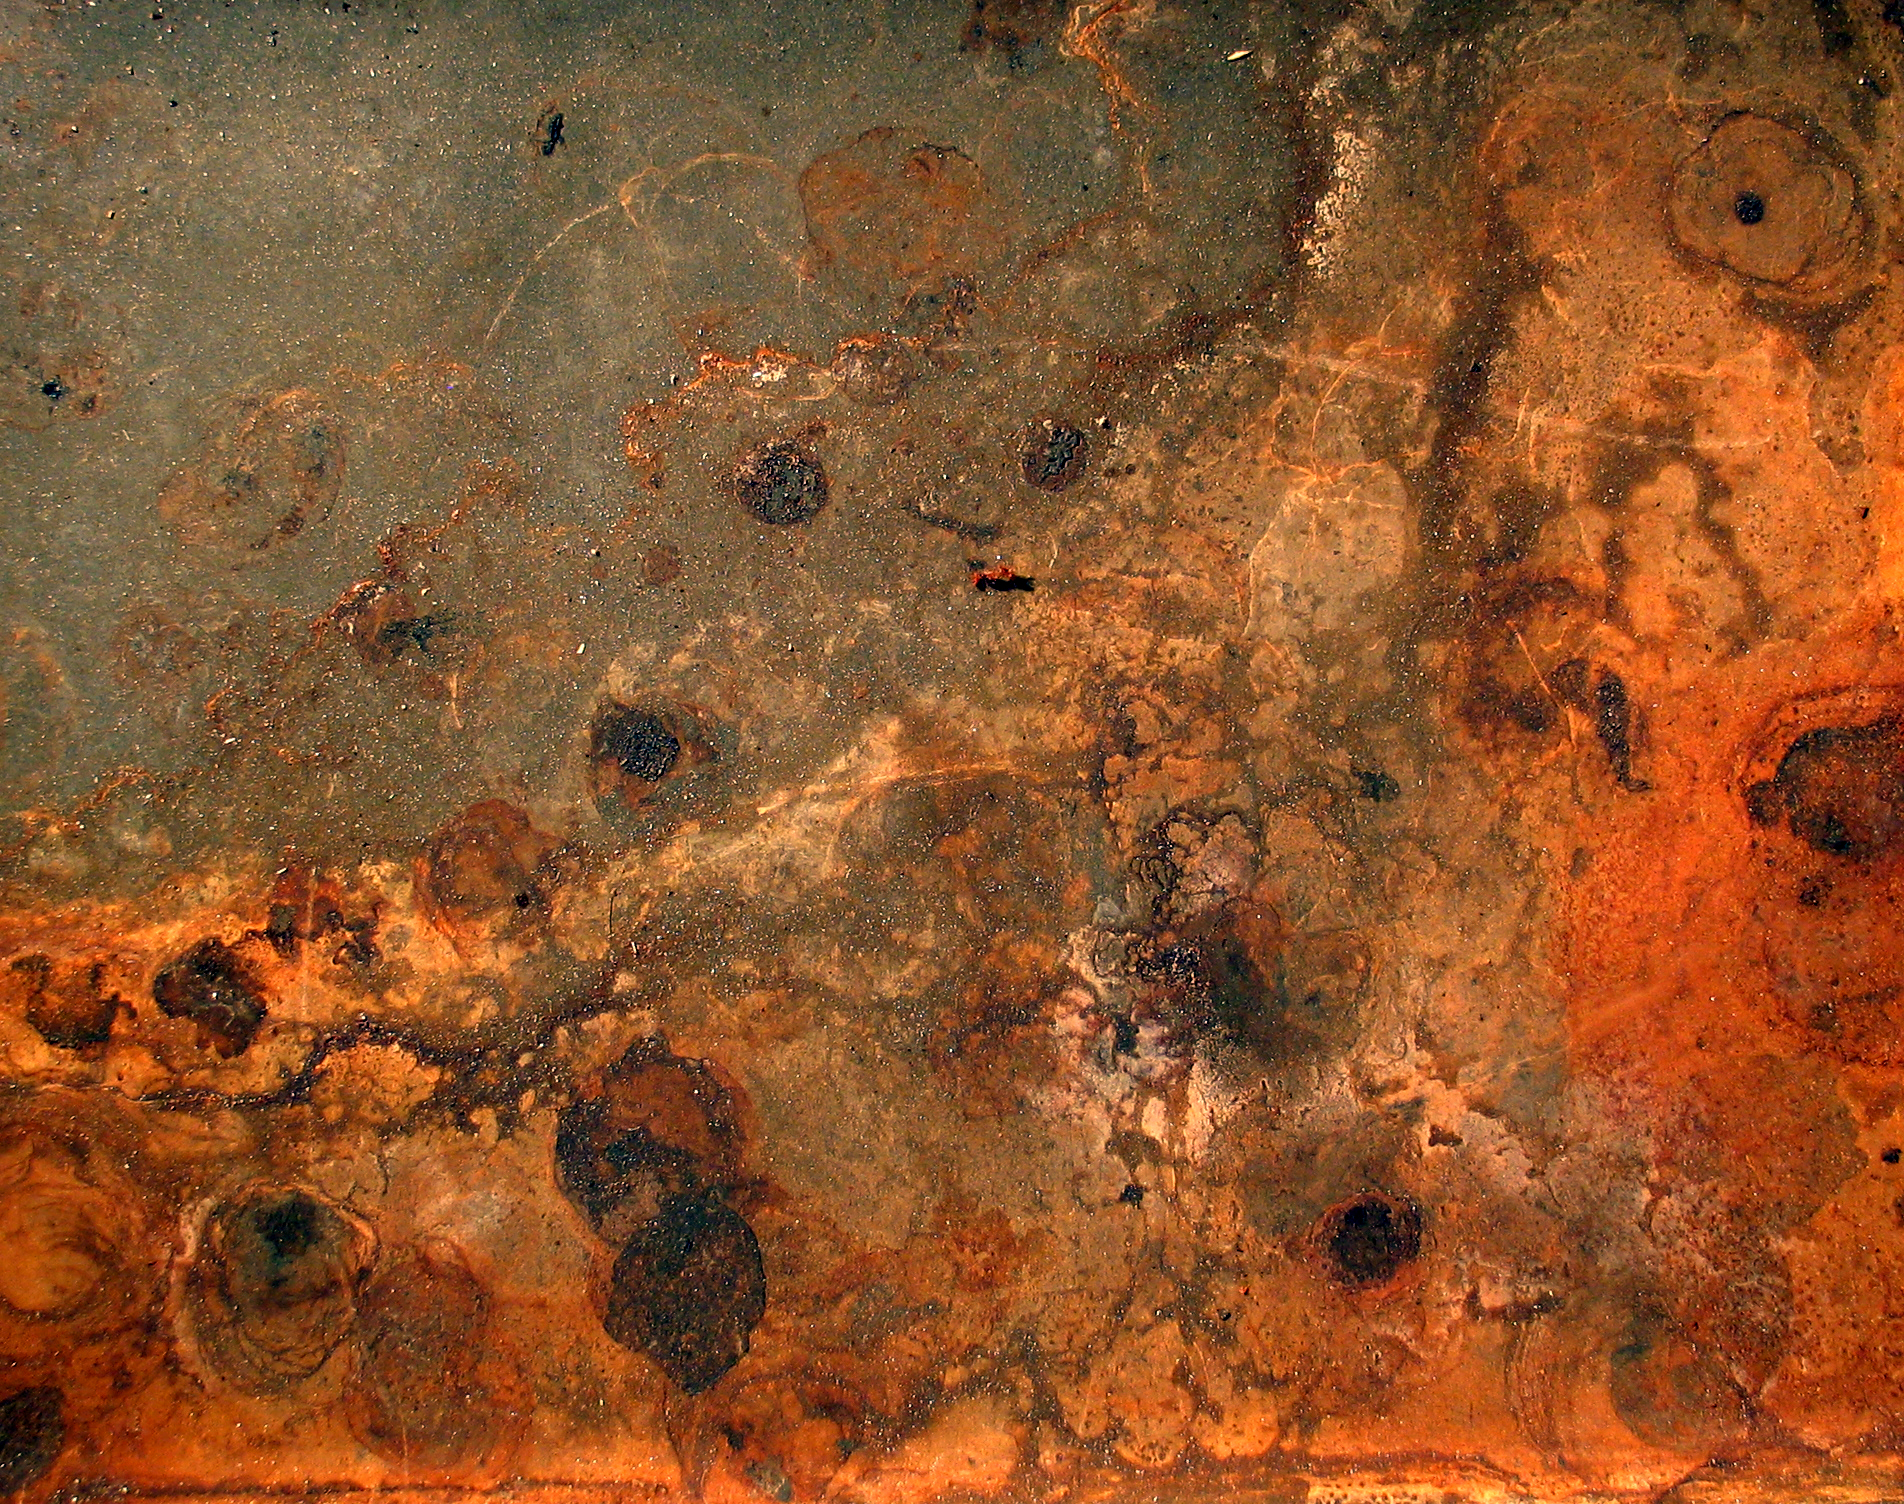 File:Rust and dirt.jpg - Wikimedia Commons